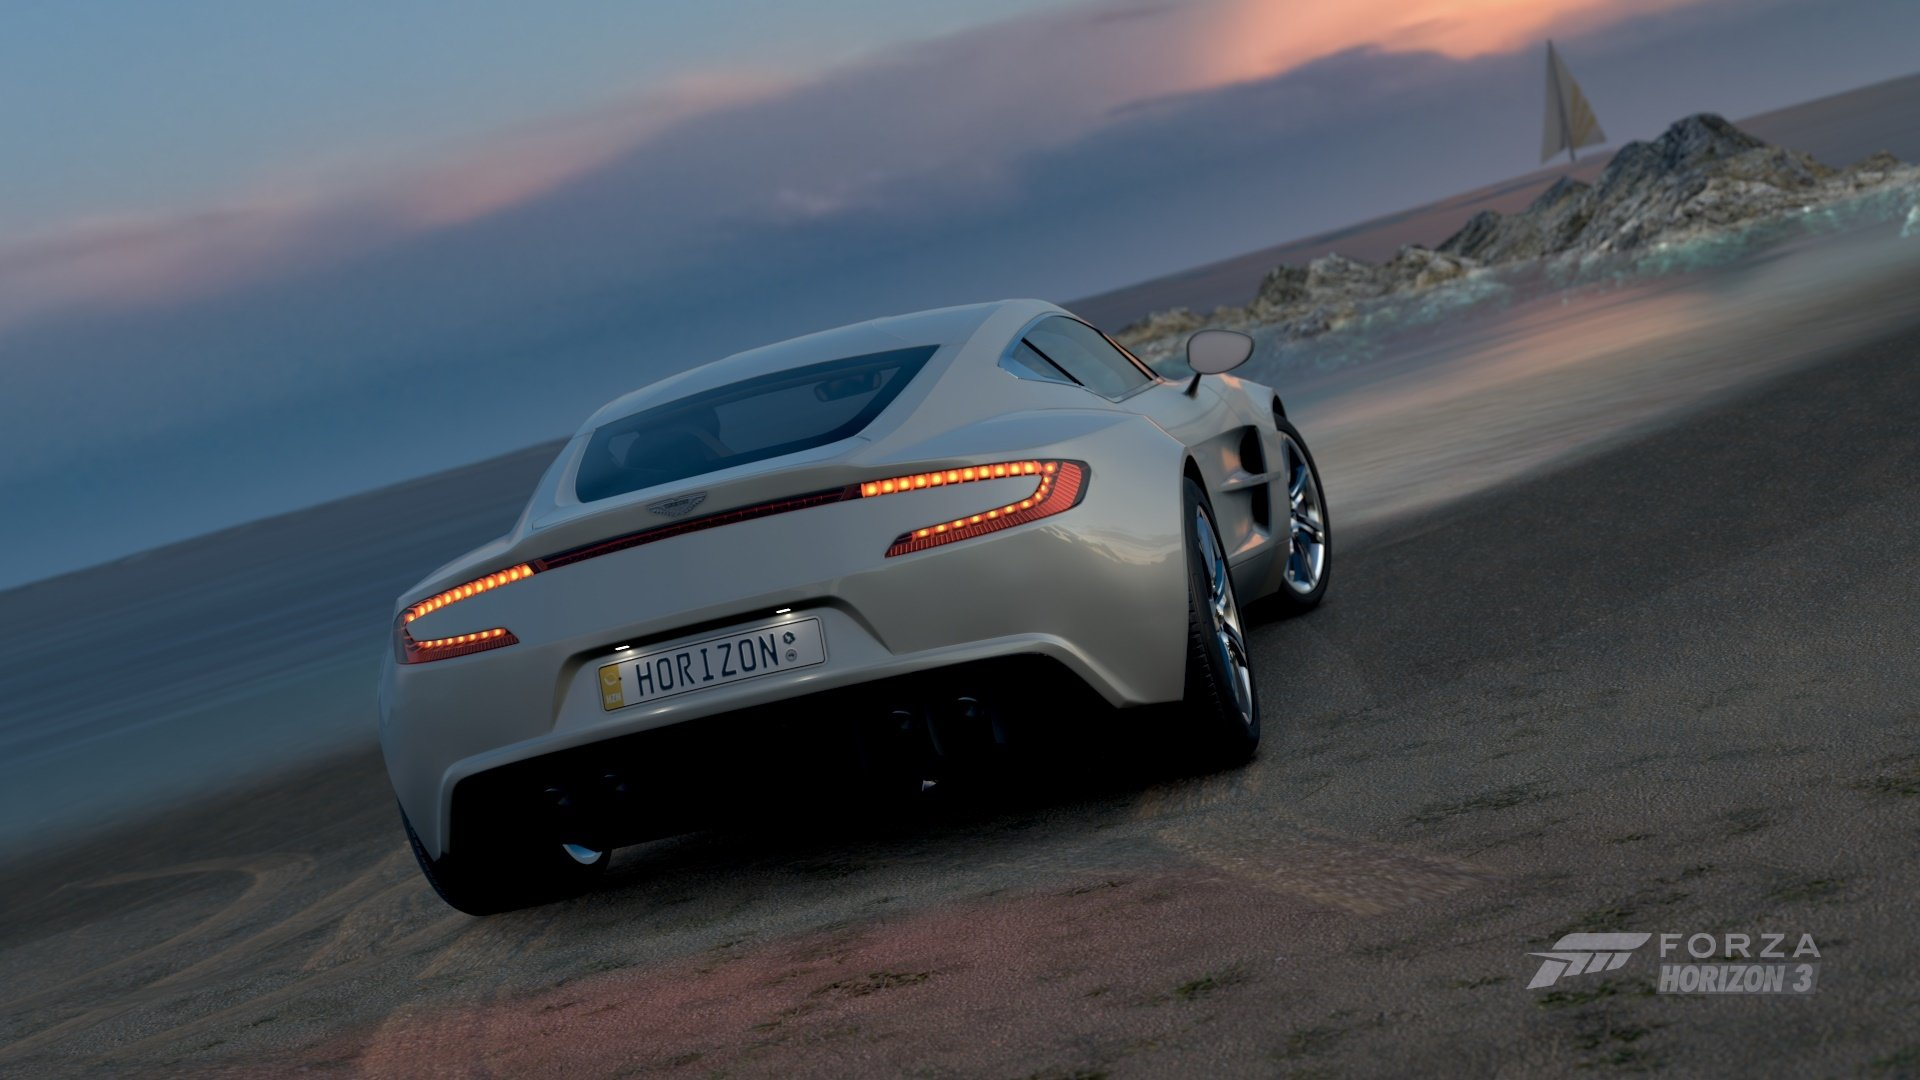 2010 Aston Martin One 77 Hd Wallpaper Background Image